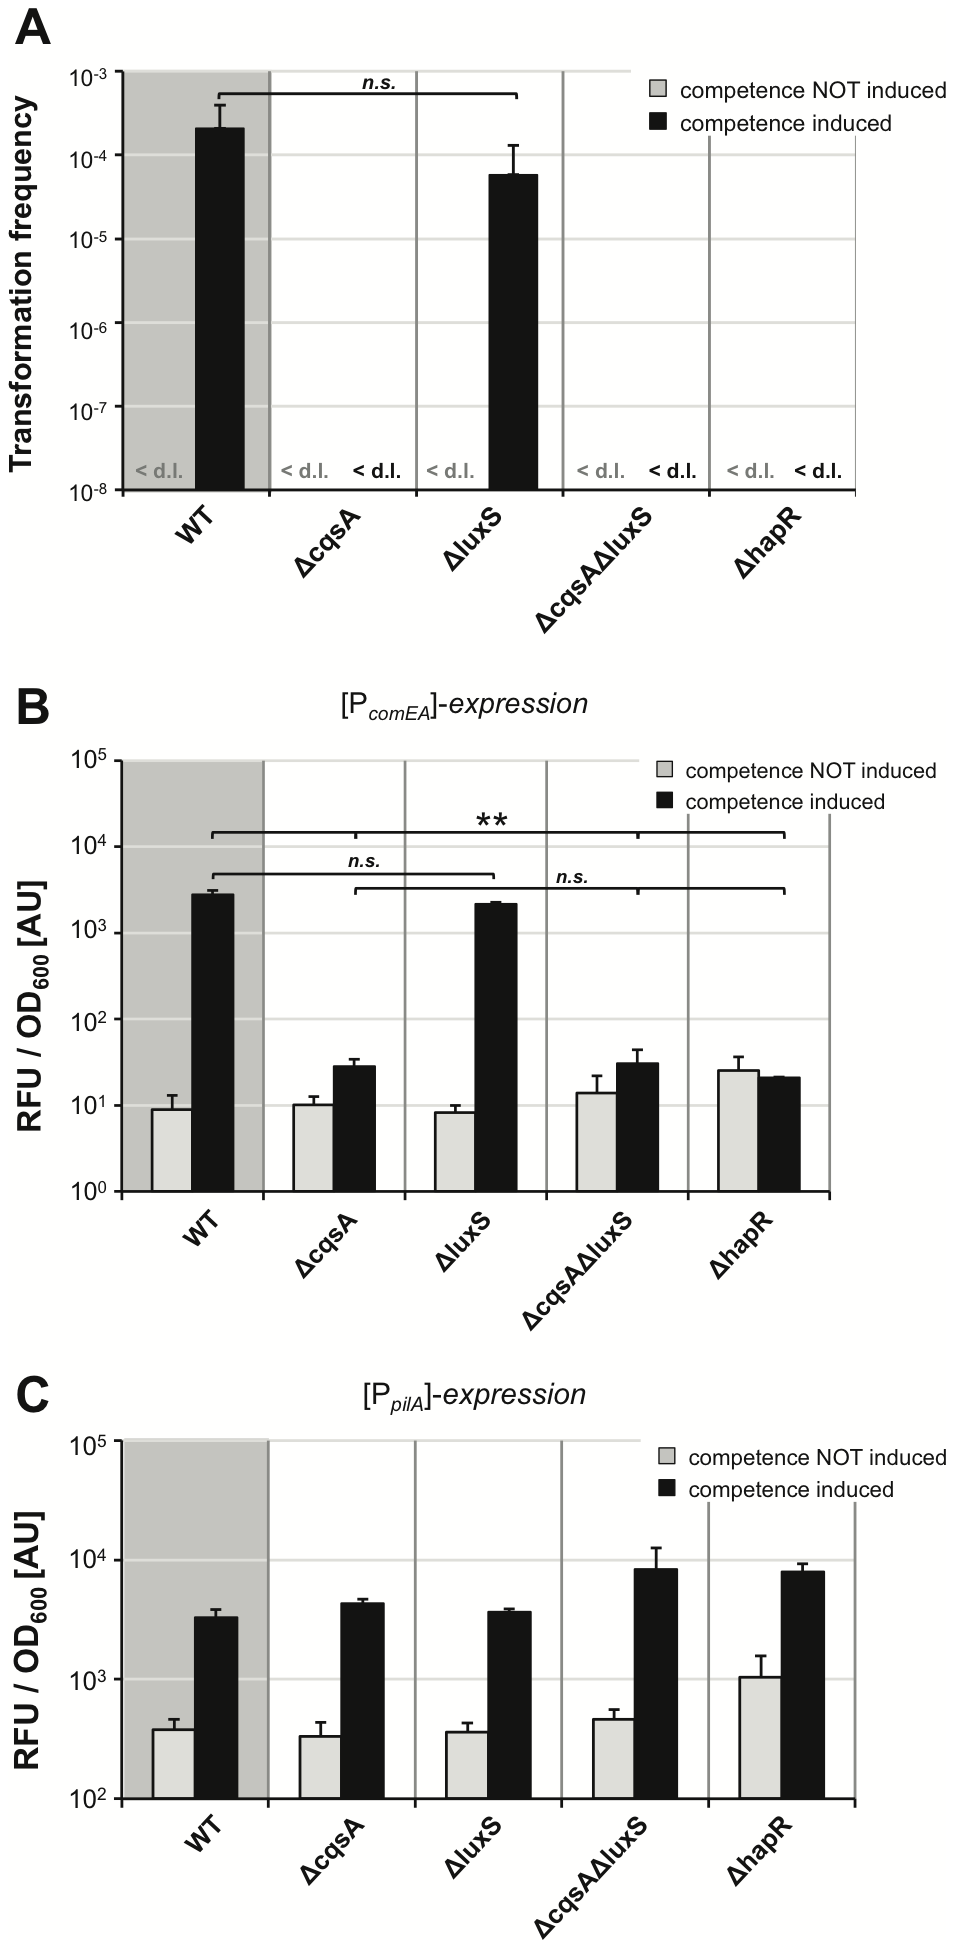 Quorum sensing only regulates a subset of competence genes.